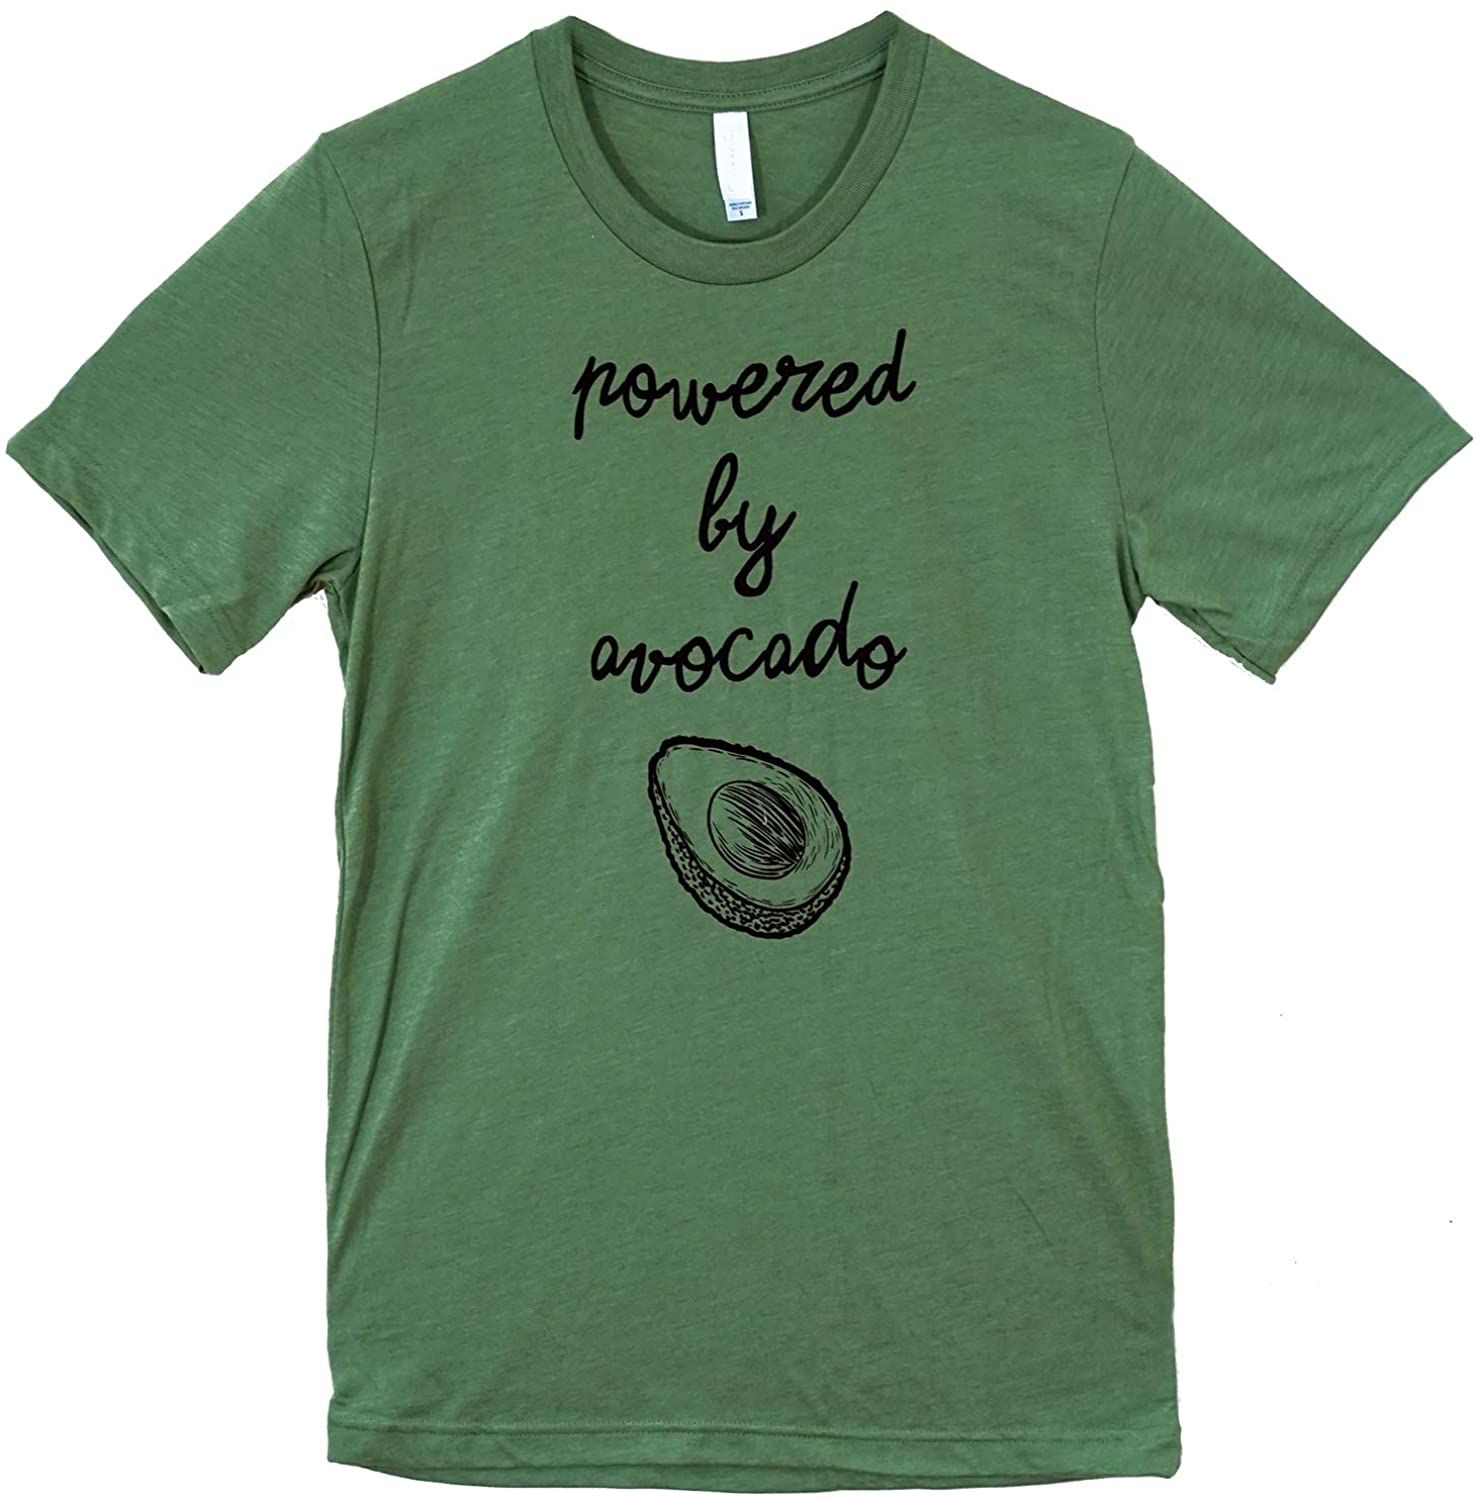 The Bold Banana Powered by Avocado T-Shirt